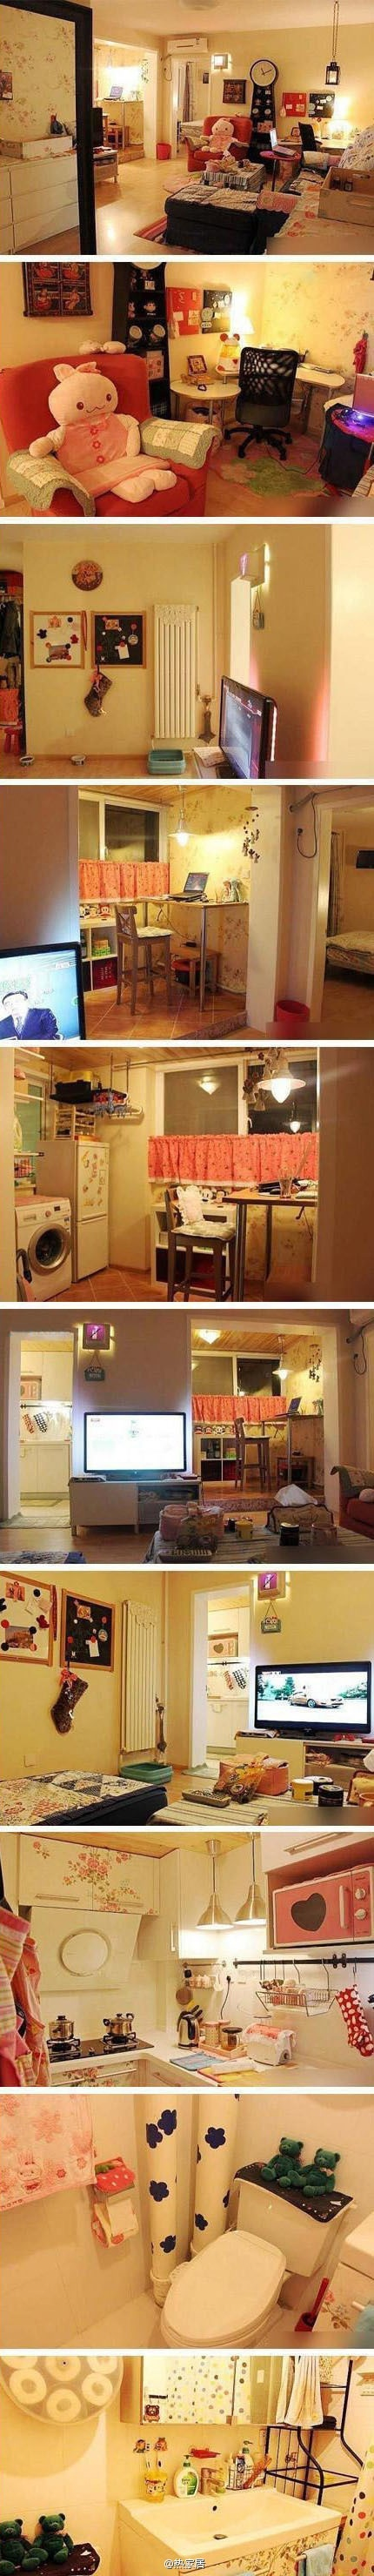 My dream single girl apartment....soon soon.....con paciencia se llega lejos =)